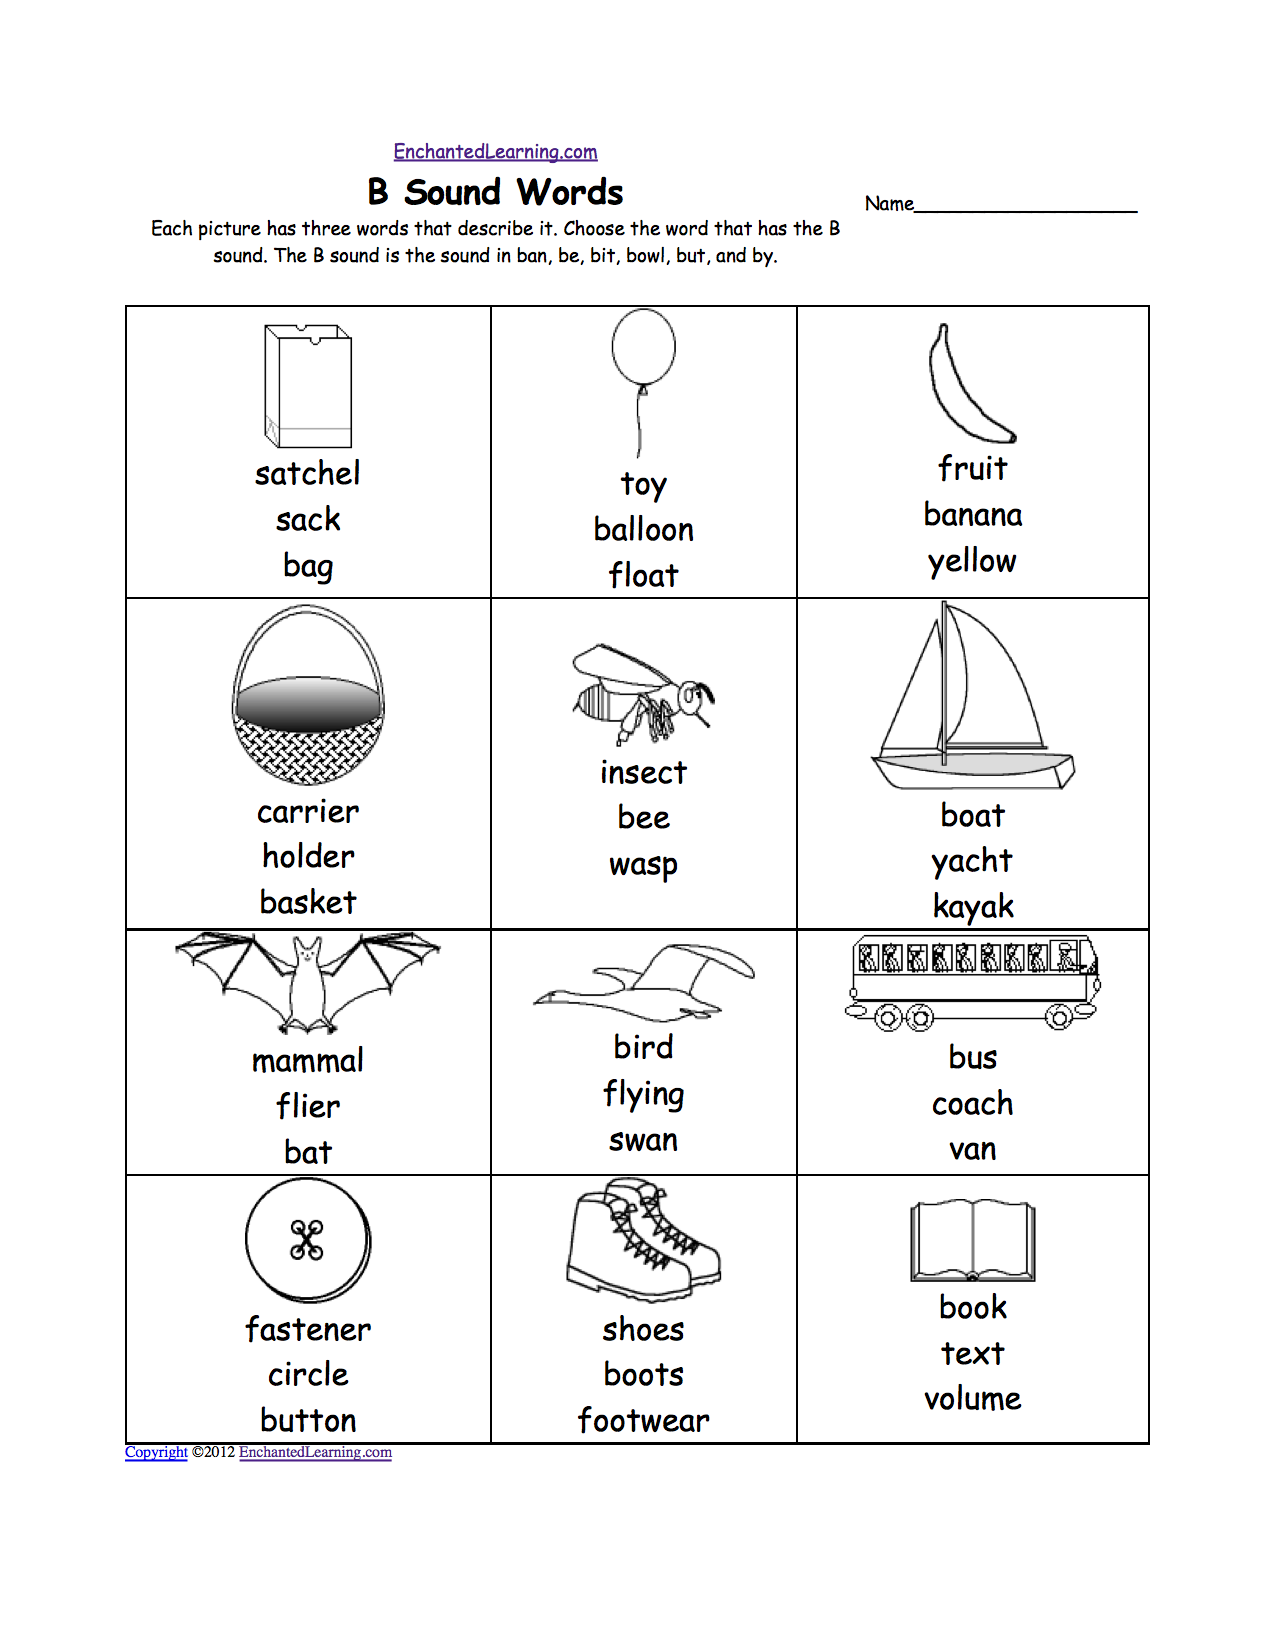 Proatmealus  Personable Phonics Worksheets Multiple Choice Worksheets To Print  With Engaging Quotbquot Sound Phonics Worksheet Multiple Choice Each Picture Has Three Words That Describe It Choose The Word That Has A Quotbquot Sound The Quotbquot Sound Is The Sound  With Adorable Excel Worksheet Names Also Distributive Property Worksheets For Th Grade In Addition Free Greatest Common Factor Worksheets And Multiple Intelligence Worksheet As Well As Goldilocks And The Three Bears Worksheet Additionally Space Figures Worksheets From Enchantedlearningcom With Proatmealus  Engaging Phonics Worksheets Multiple Choice Worksheets To Print  With Adorable Quotbquot Sound Phonics Worksheet Multiple Choice Each Picture Has Three Words That Describe It Choose The Word That Has A Quotbquot Sound The Quotbquot Sound Is The Sound  And Personable Excel Worksheet Names Also Distributive Property Worksheets For Th Grade In Addition Free Greatest Common Factor Worksheets From Enchantedlearningcom